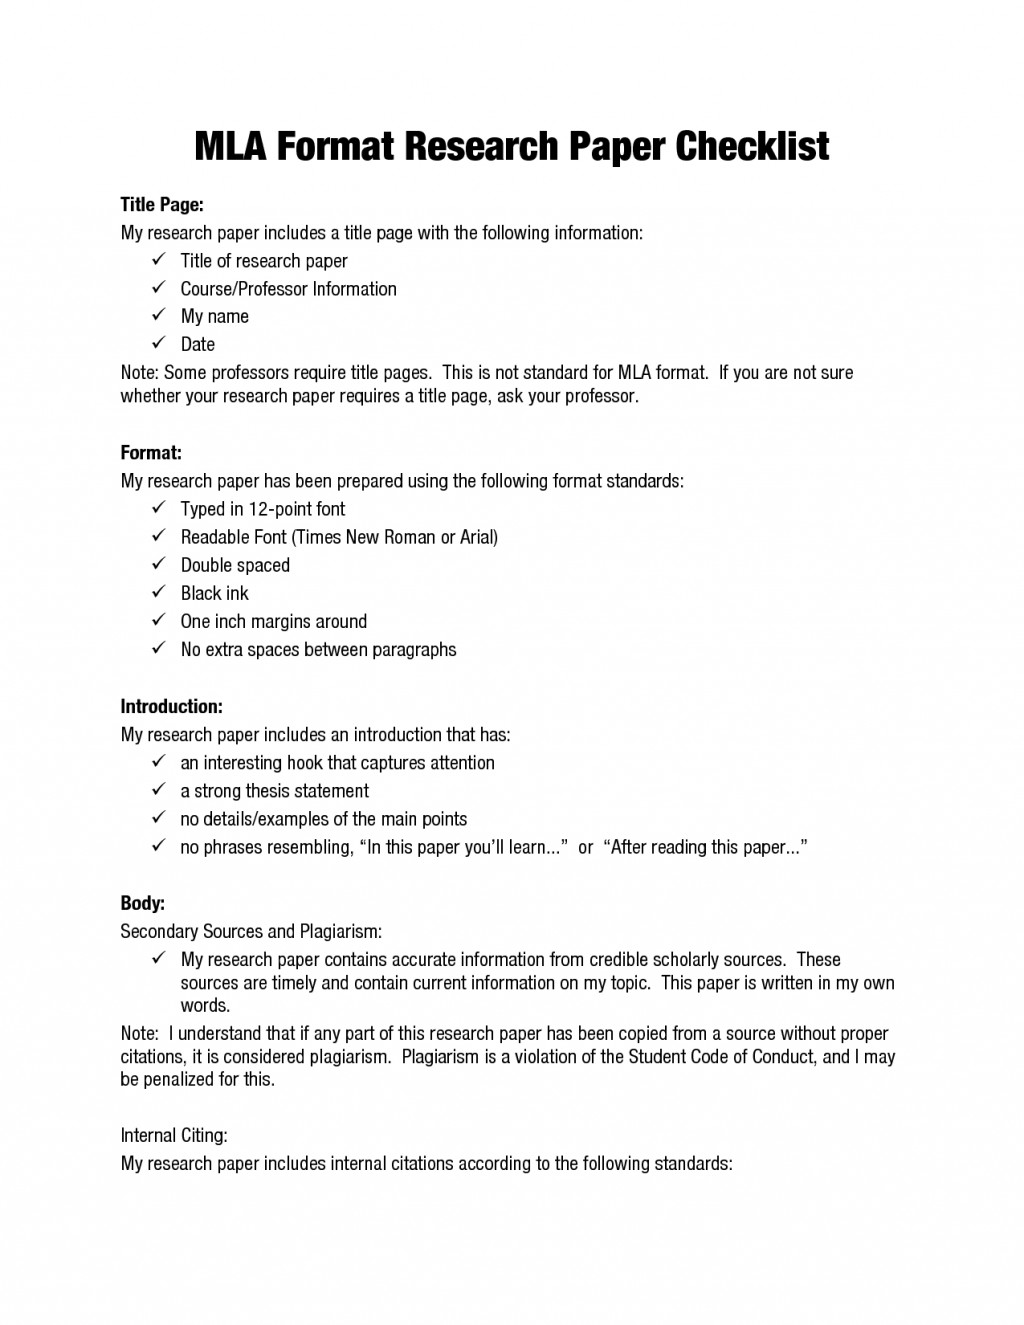 020 Collection Of Solutions Term Paper Mla Format Targer Golden Dragon For How To Cite Website In My Citing Websites Exceptional Research A Large